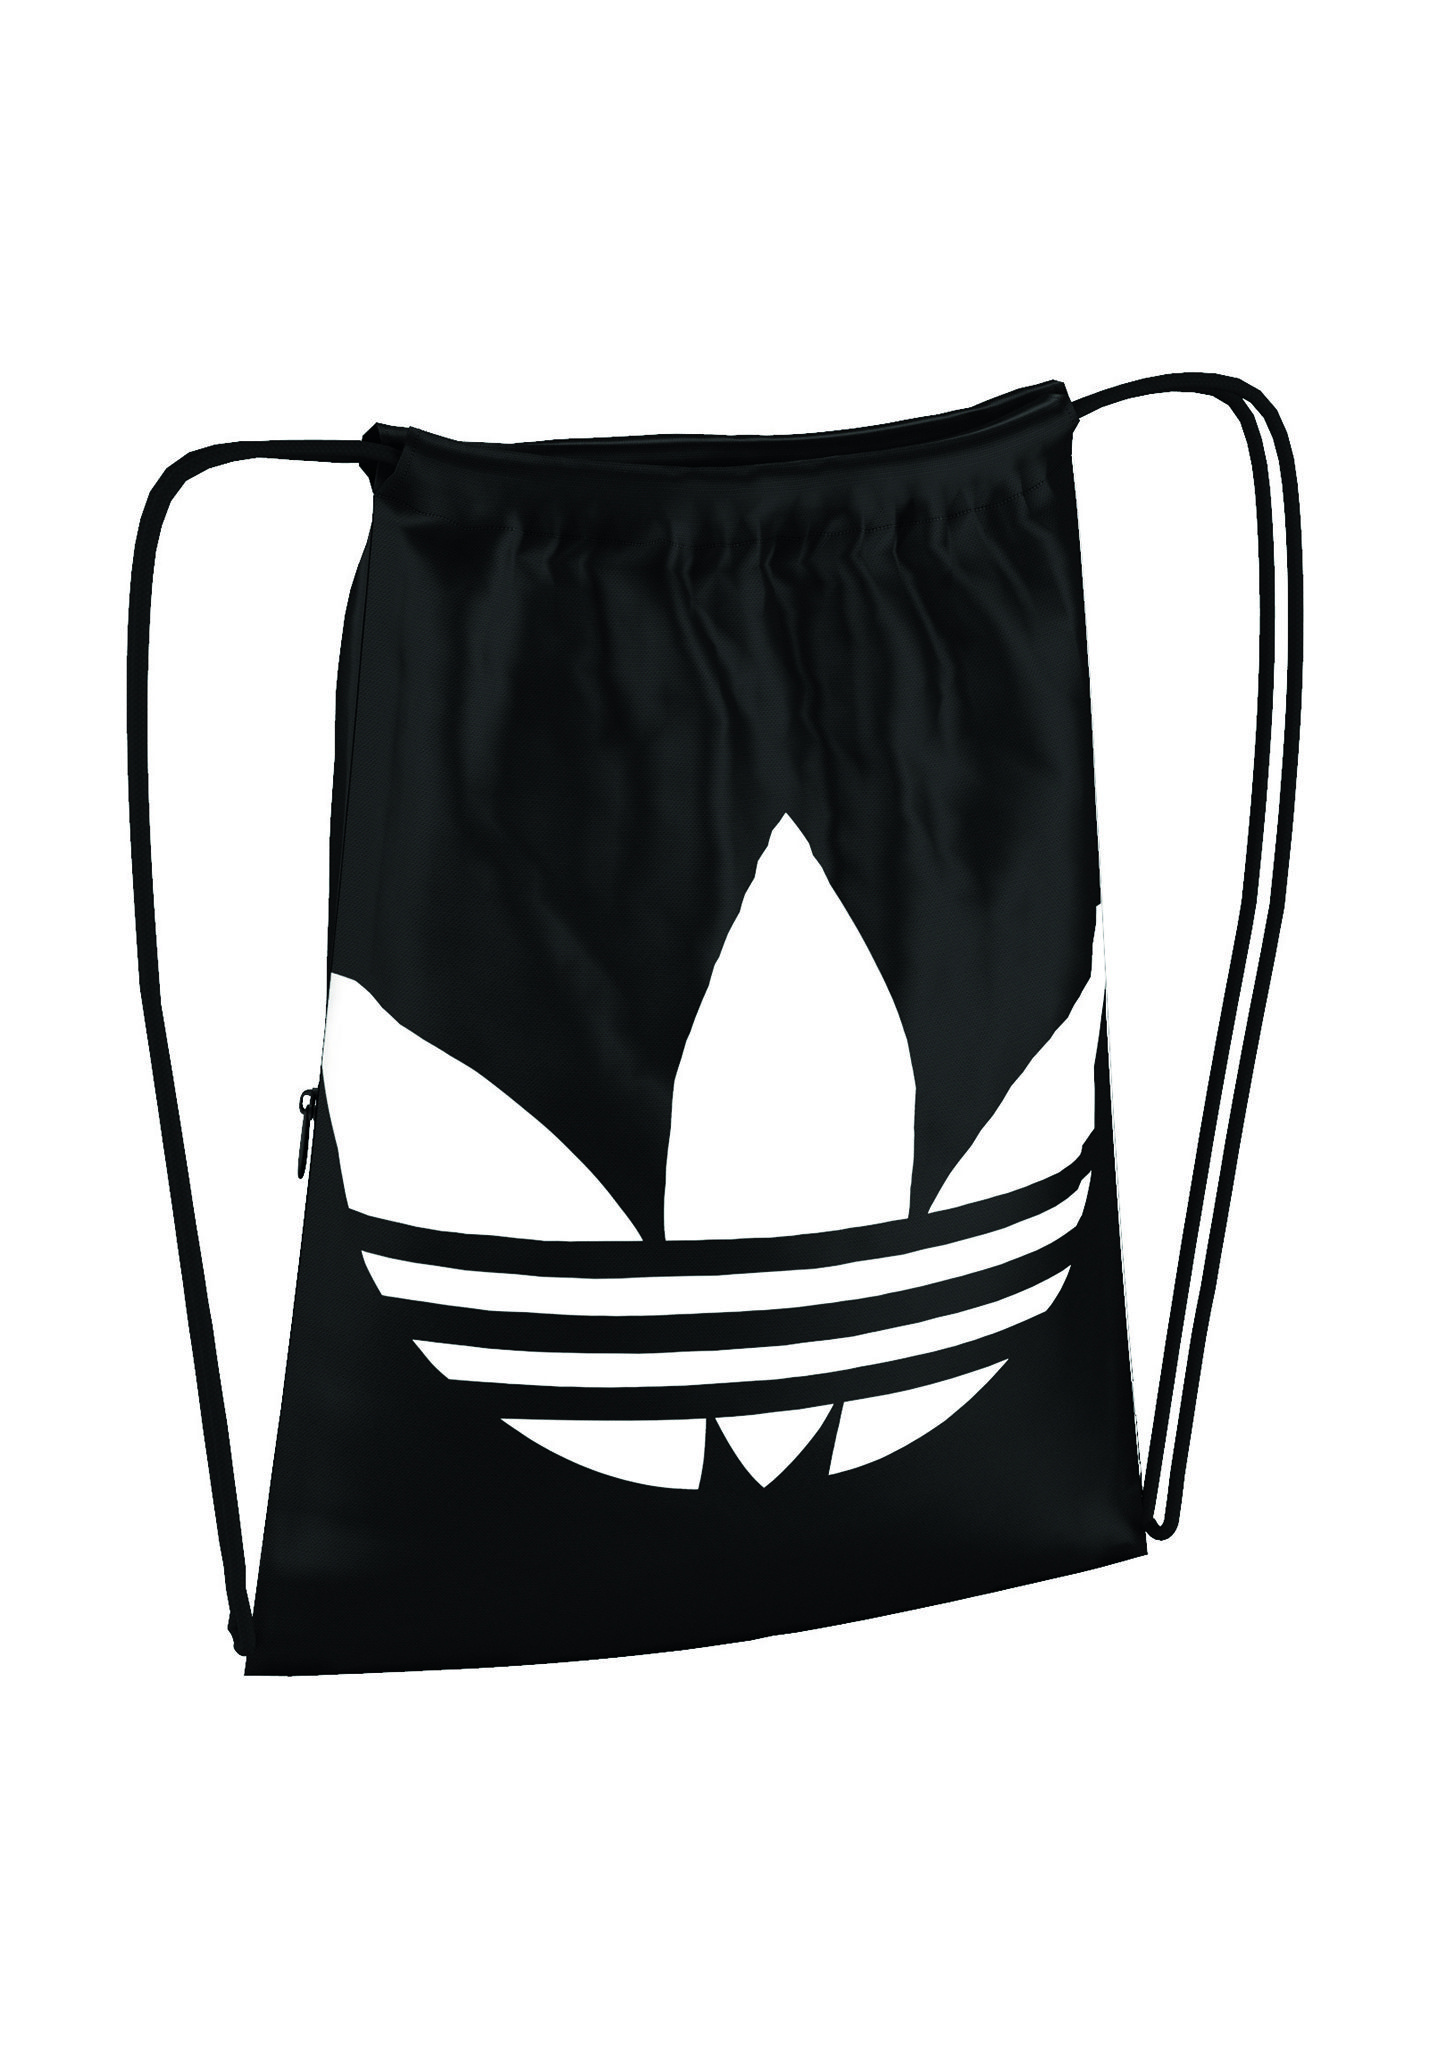 0c9734789caa ADIDAS ORIGINALS Trefoil - Gym Bag - Black - Planet Sports